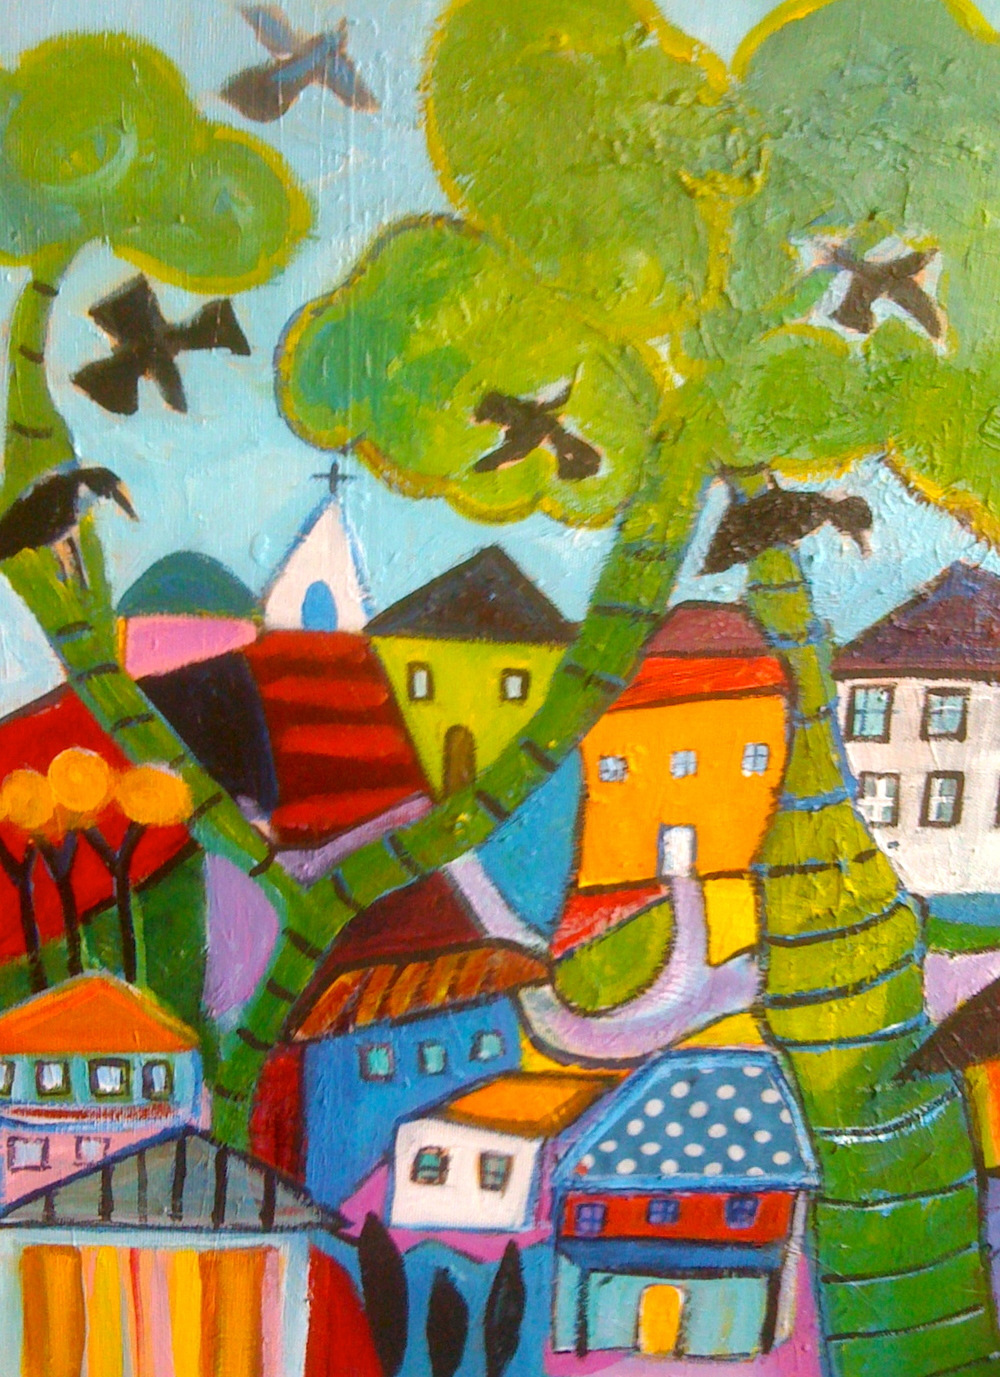 Blackbirds have arrived . Here I used bold patterns and colors. This painting has a home.